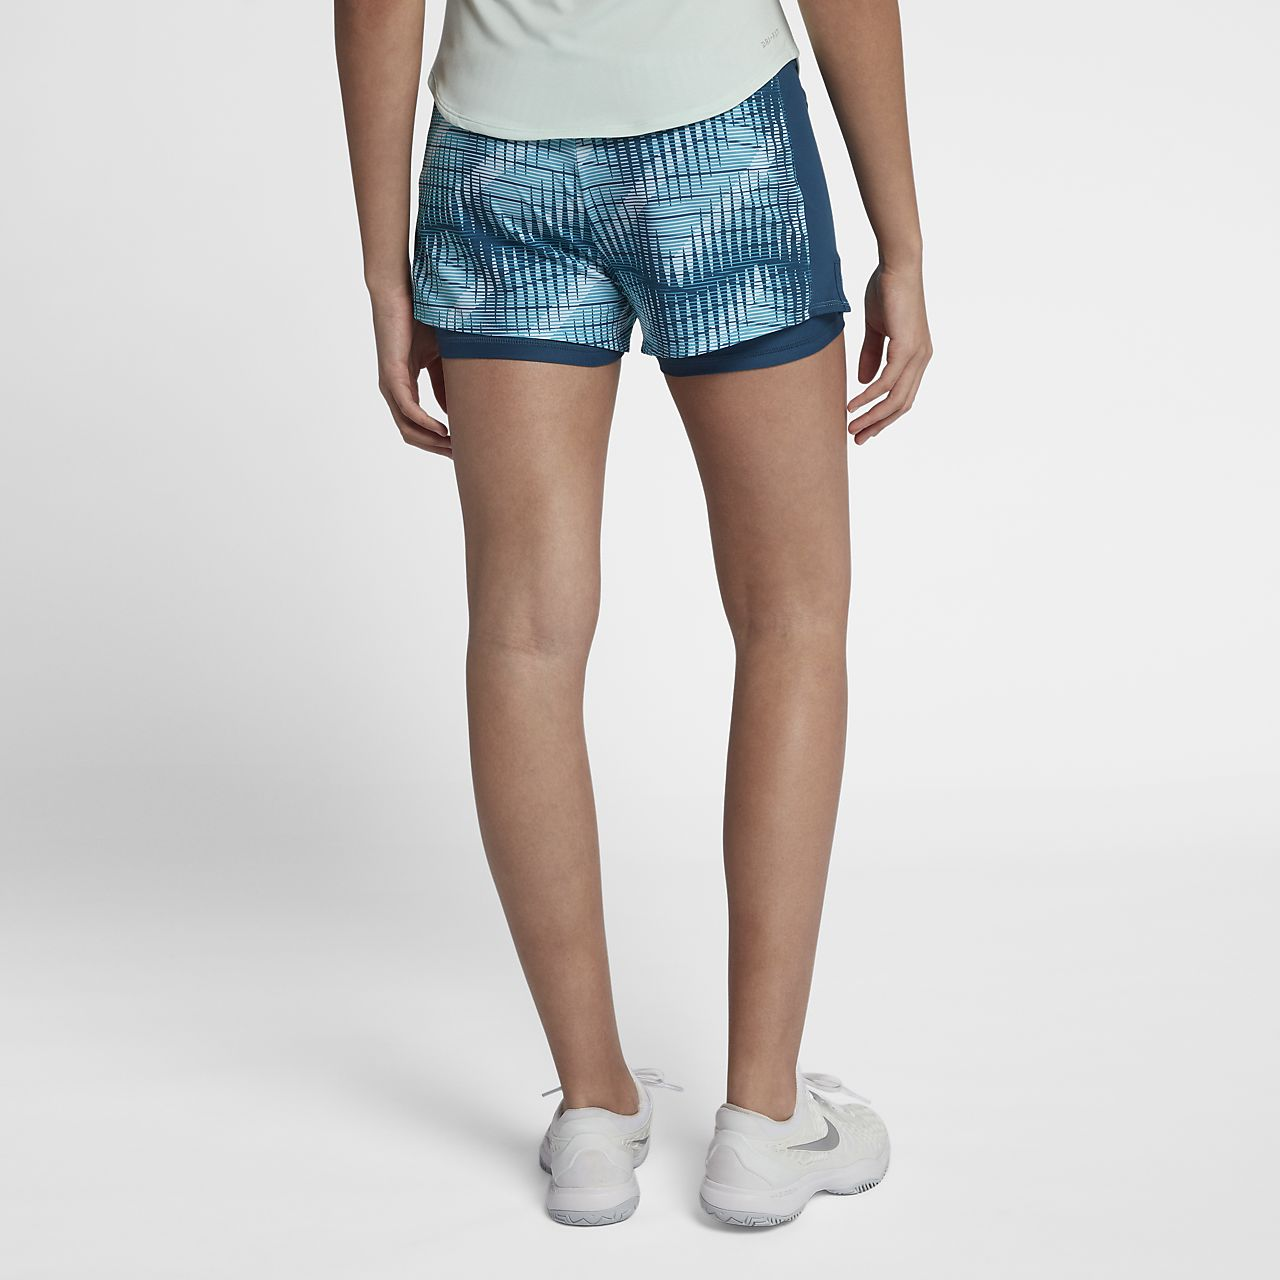 ... NikeCourt Flex Pure Women's Tennis Shorts